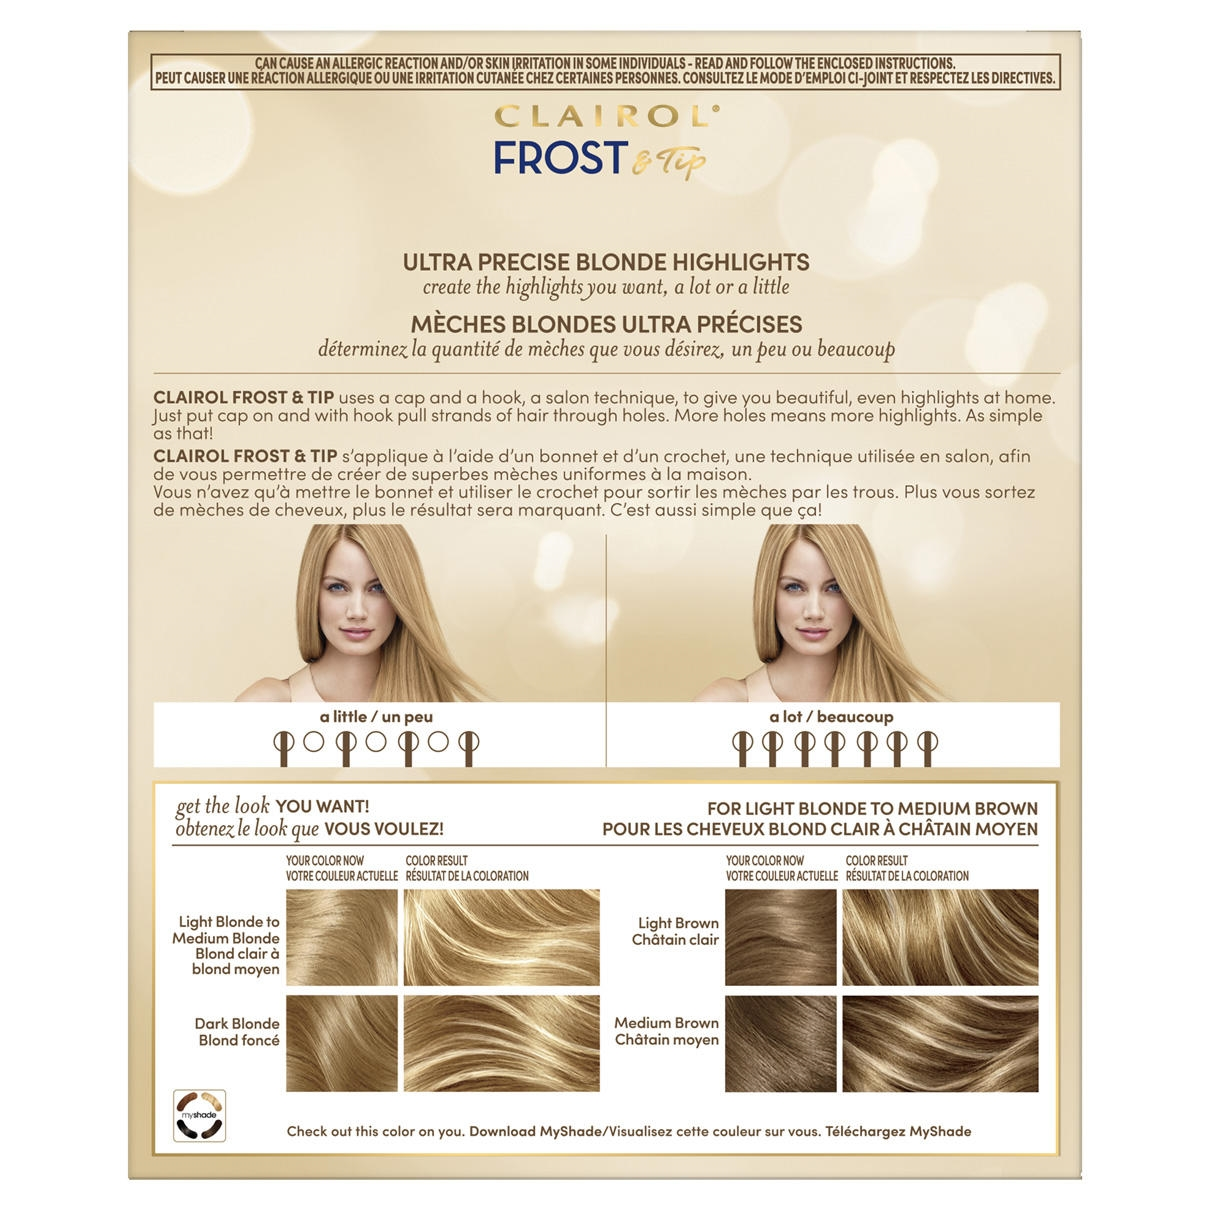 Frost Tip Clairol